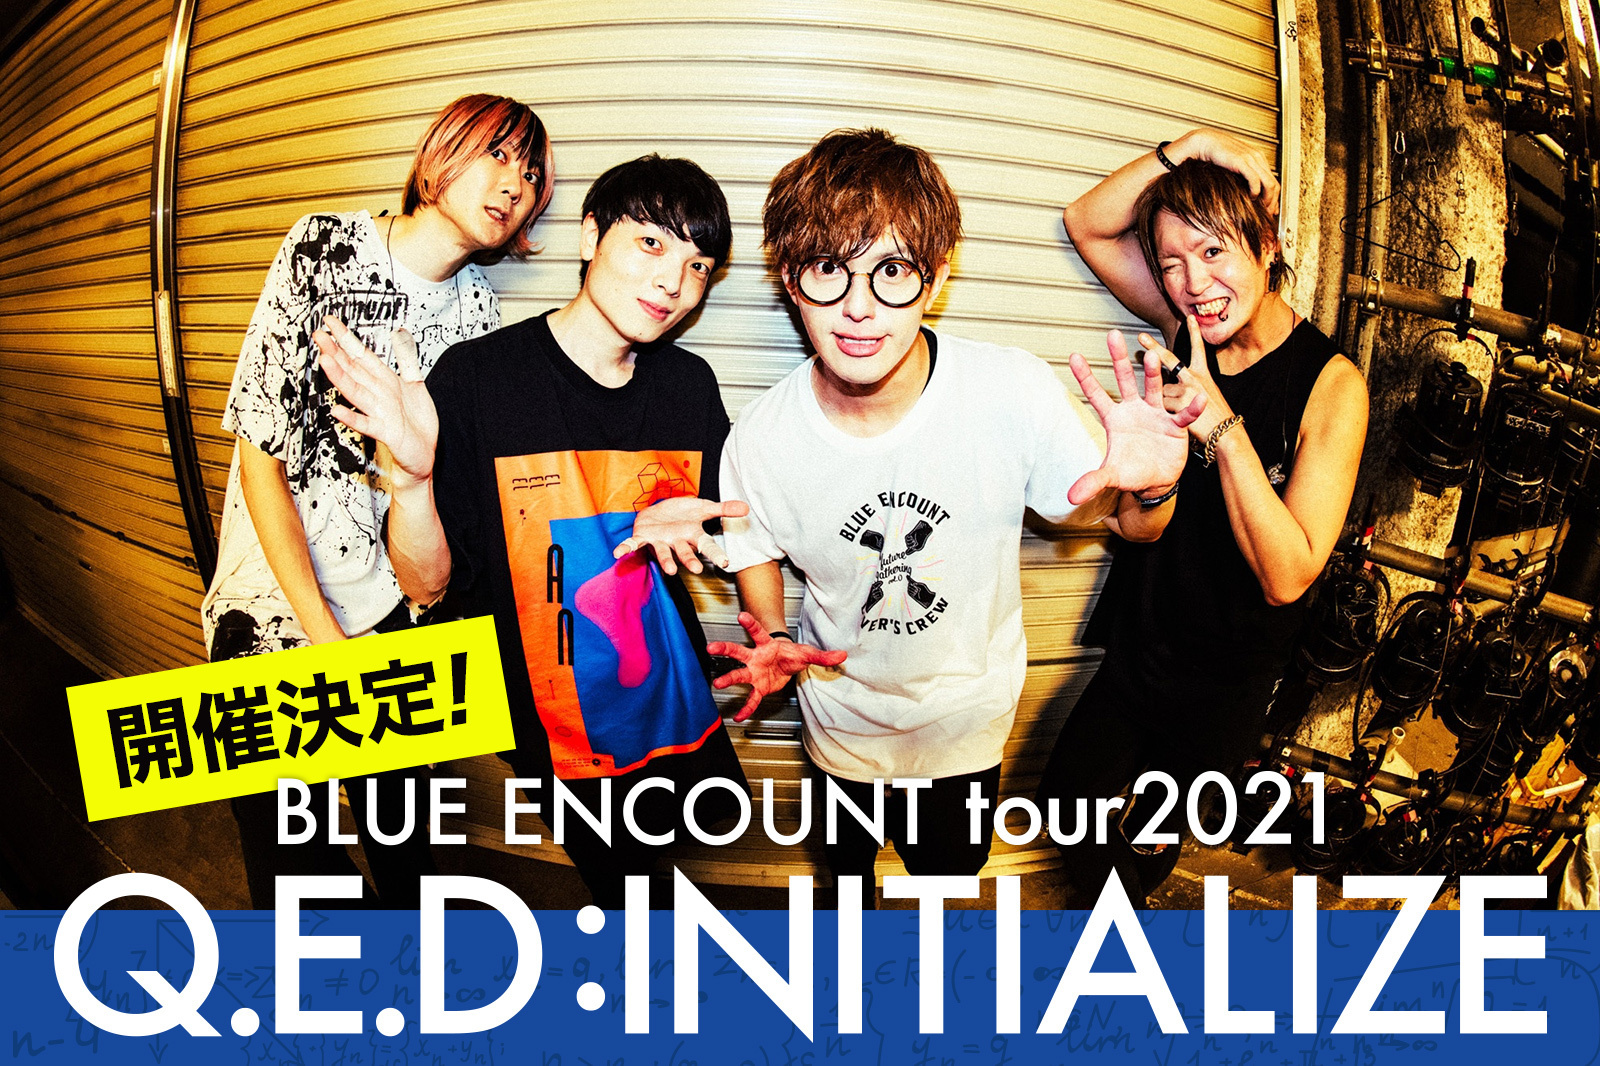 BLUE ENCOUNT tour 2021 〜Q.E.D : INITIALIZE〜